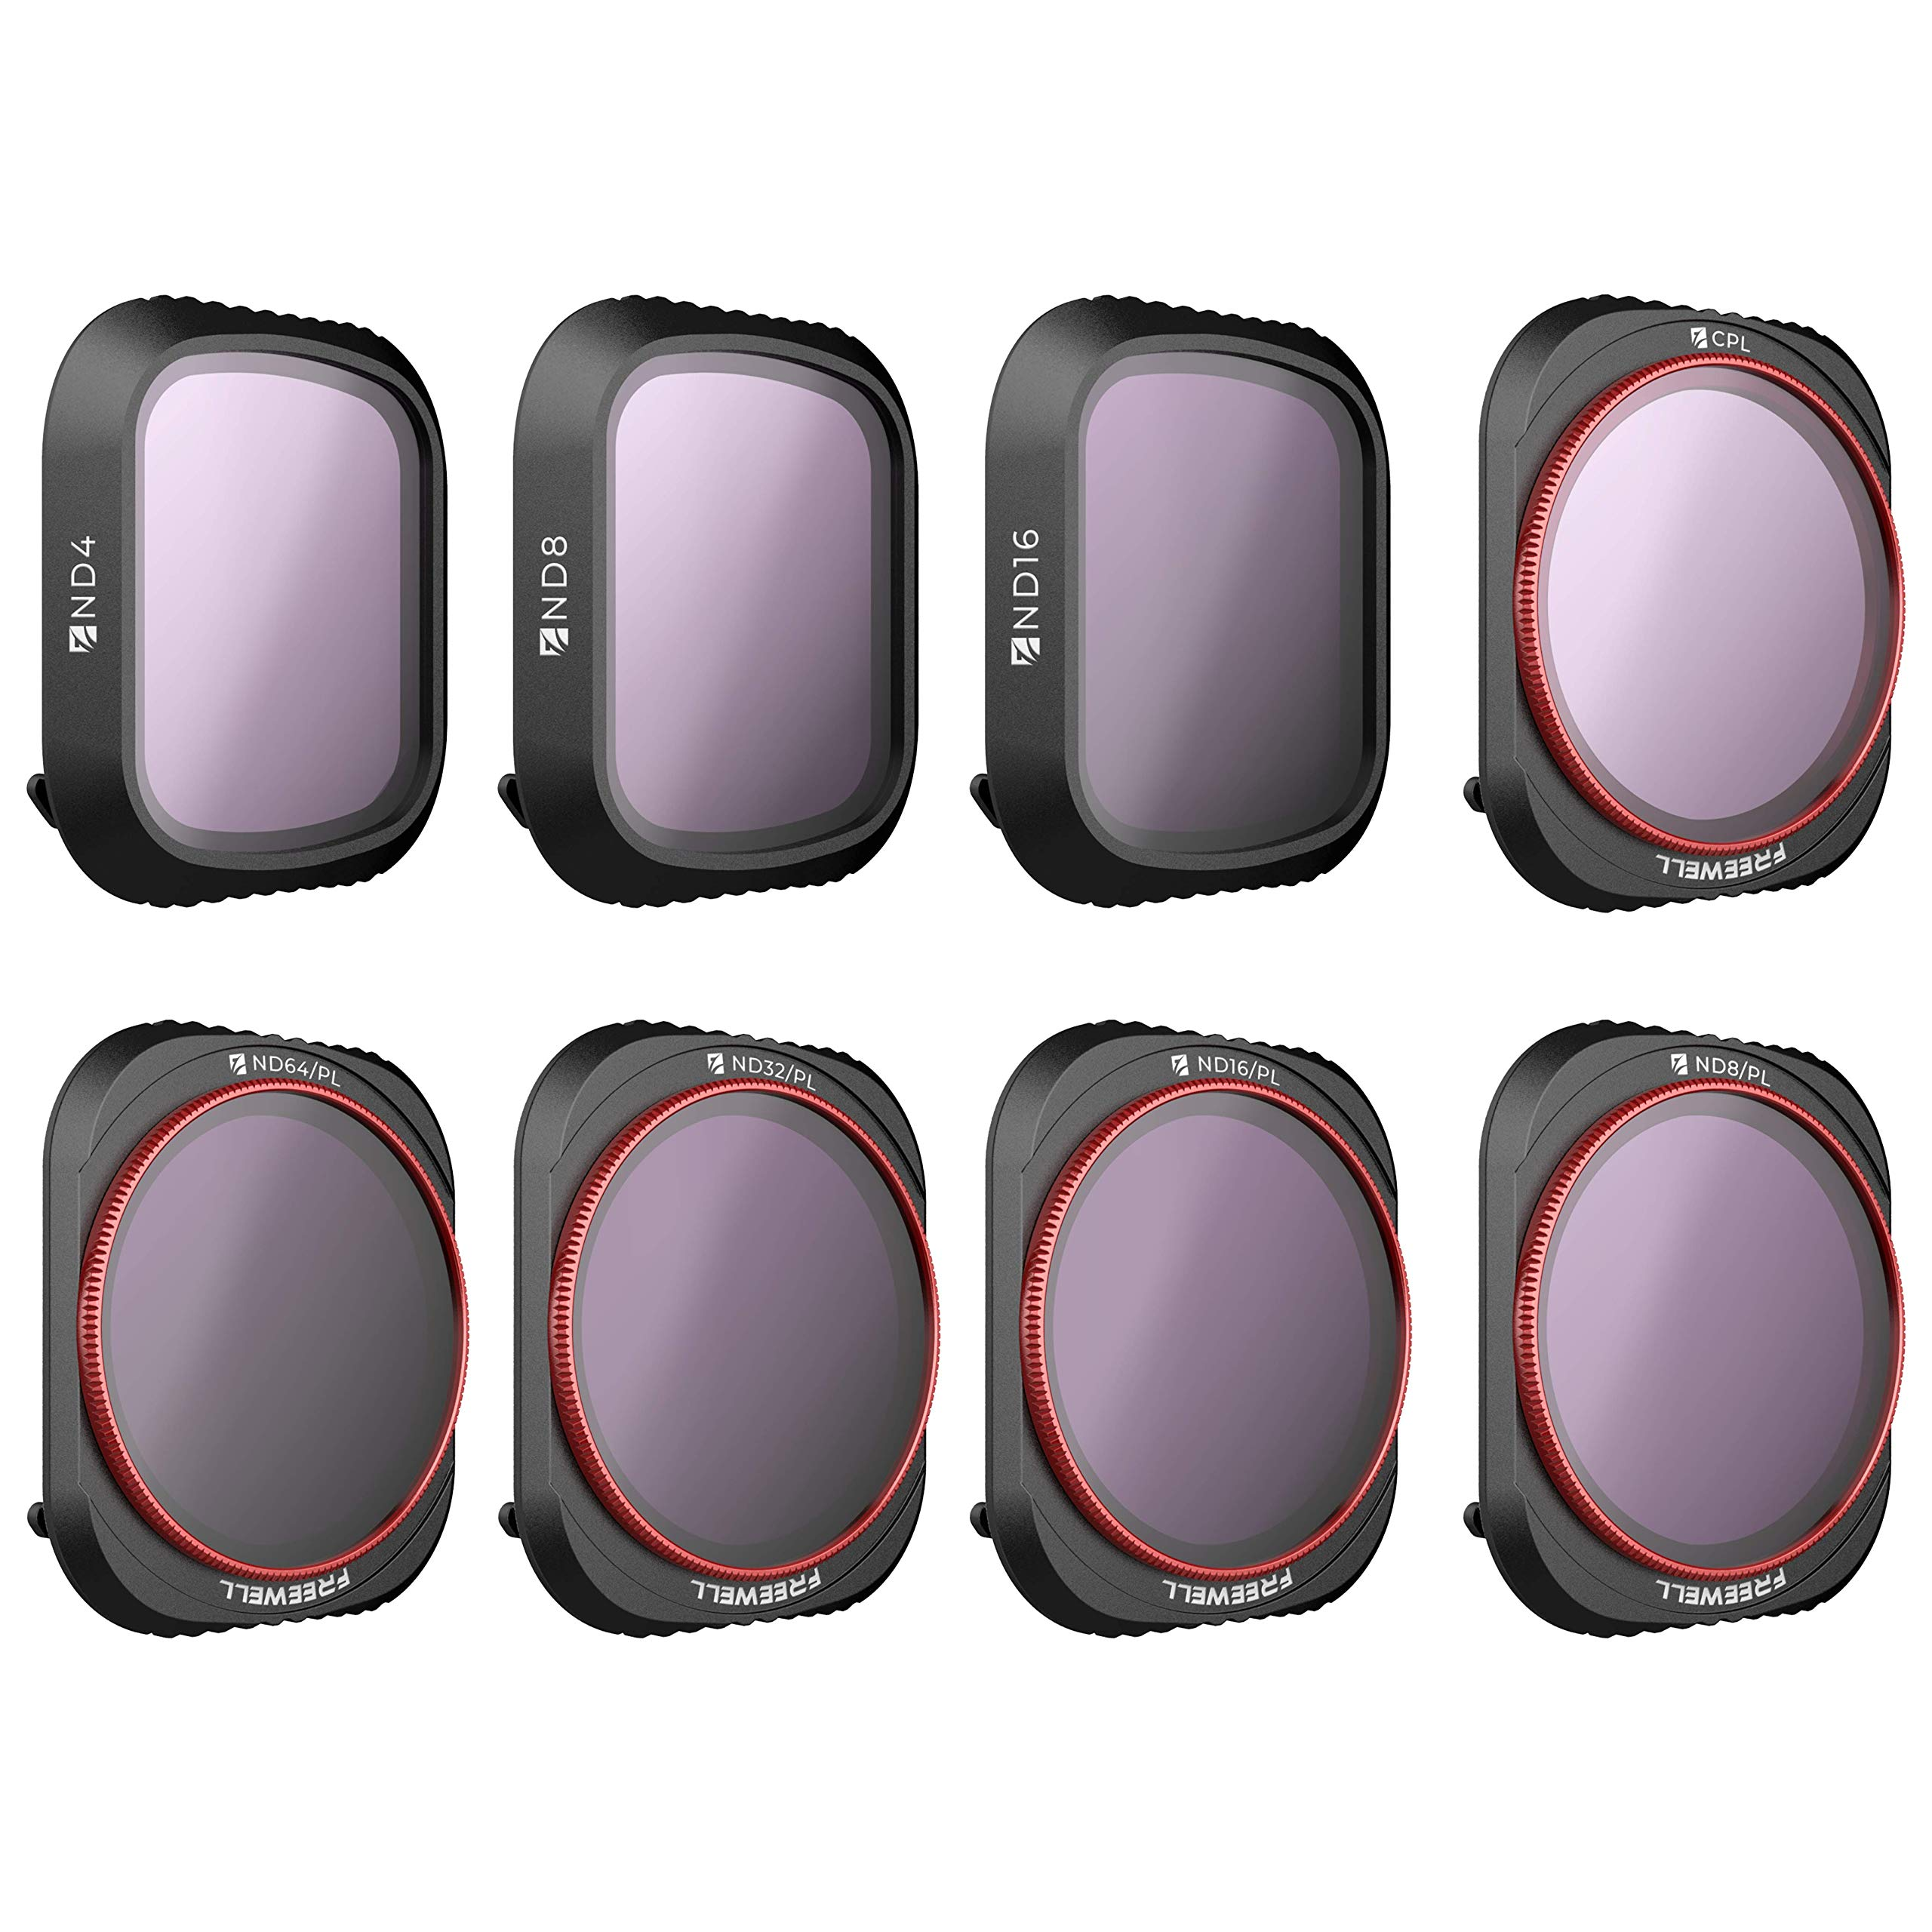 Freewell All Day - 4K Series - 8Pack ND4, ND8, ND16, CPL, ND8/PL, ND16/PL, ND32/PL, ND64/PL Camera Lens Filters Compatible with DJI Mavic 2 Pro Drone